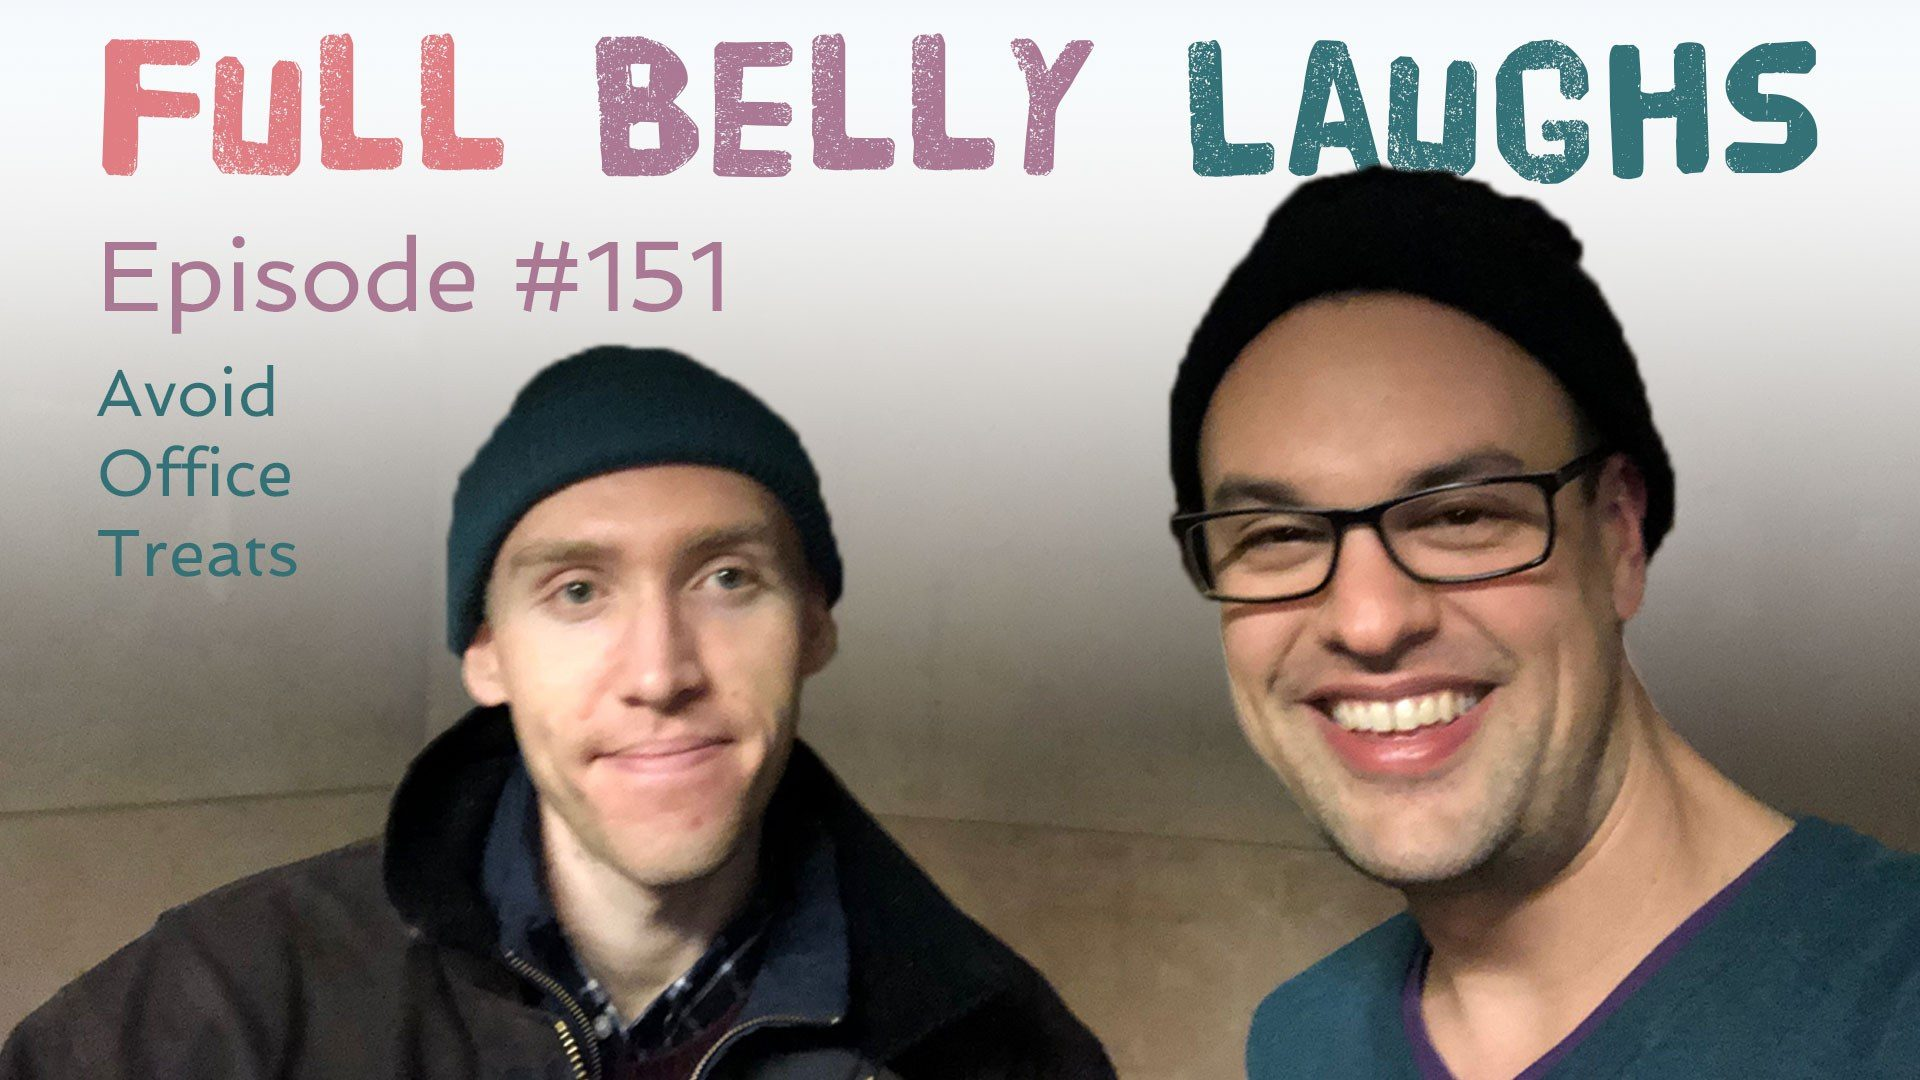 full belly laughs podcast episode 151 avoid office treats audio artwork